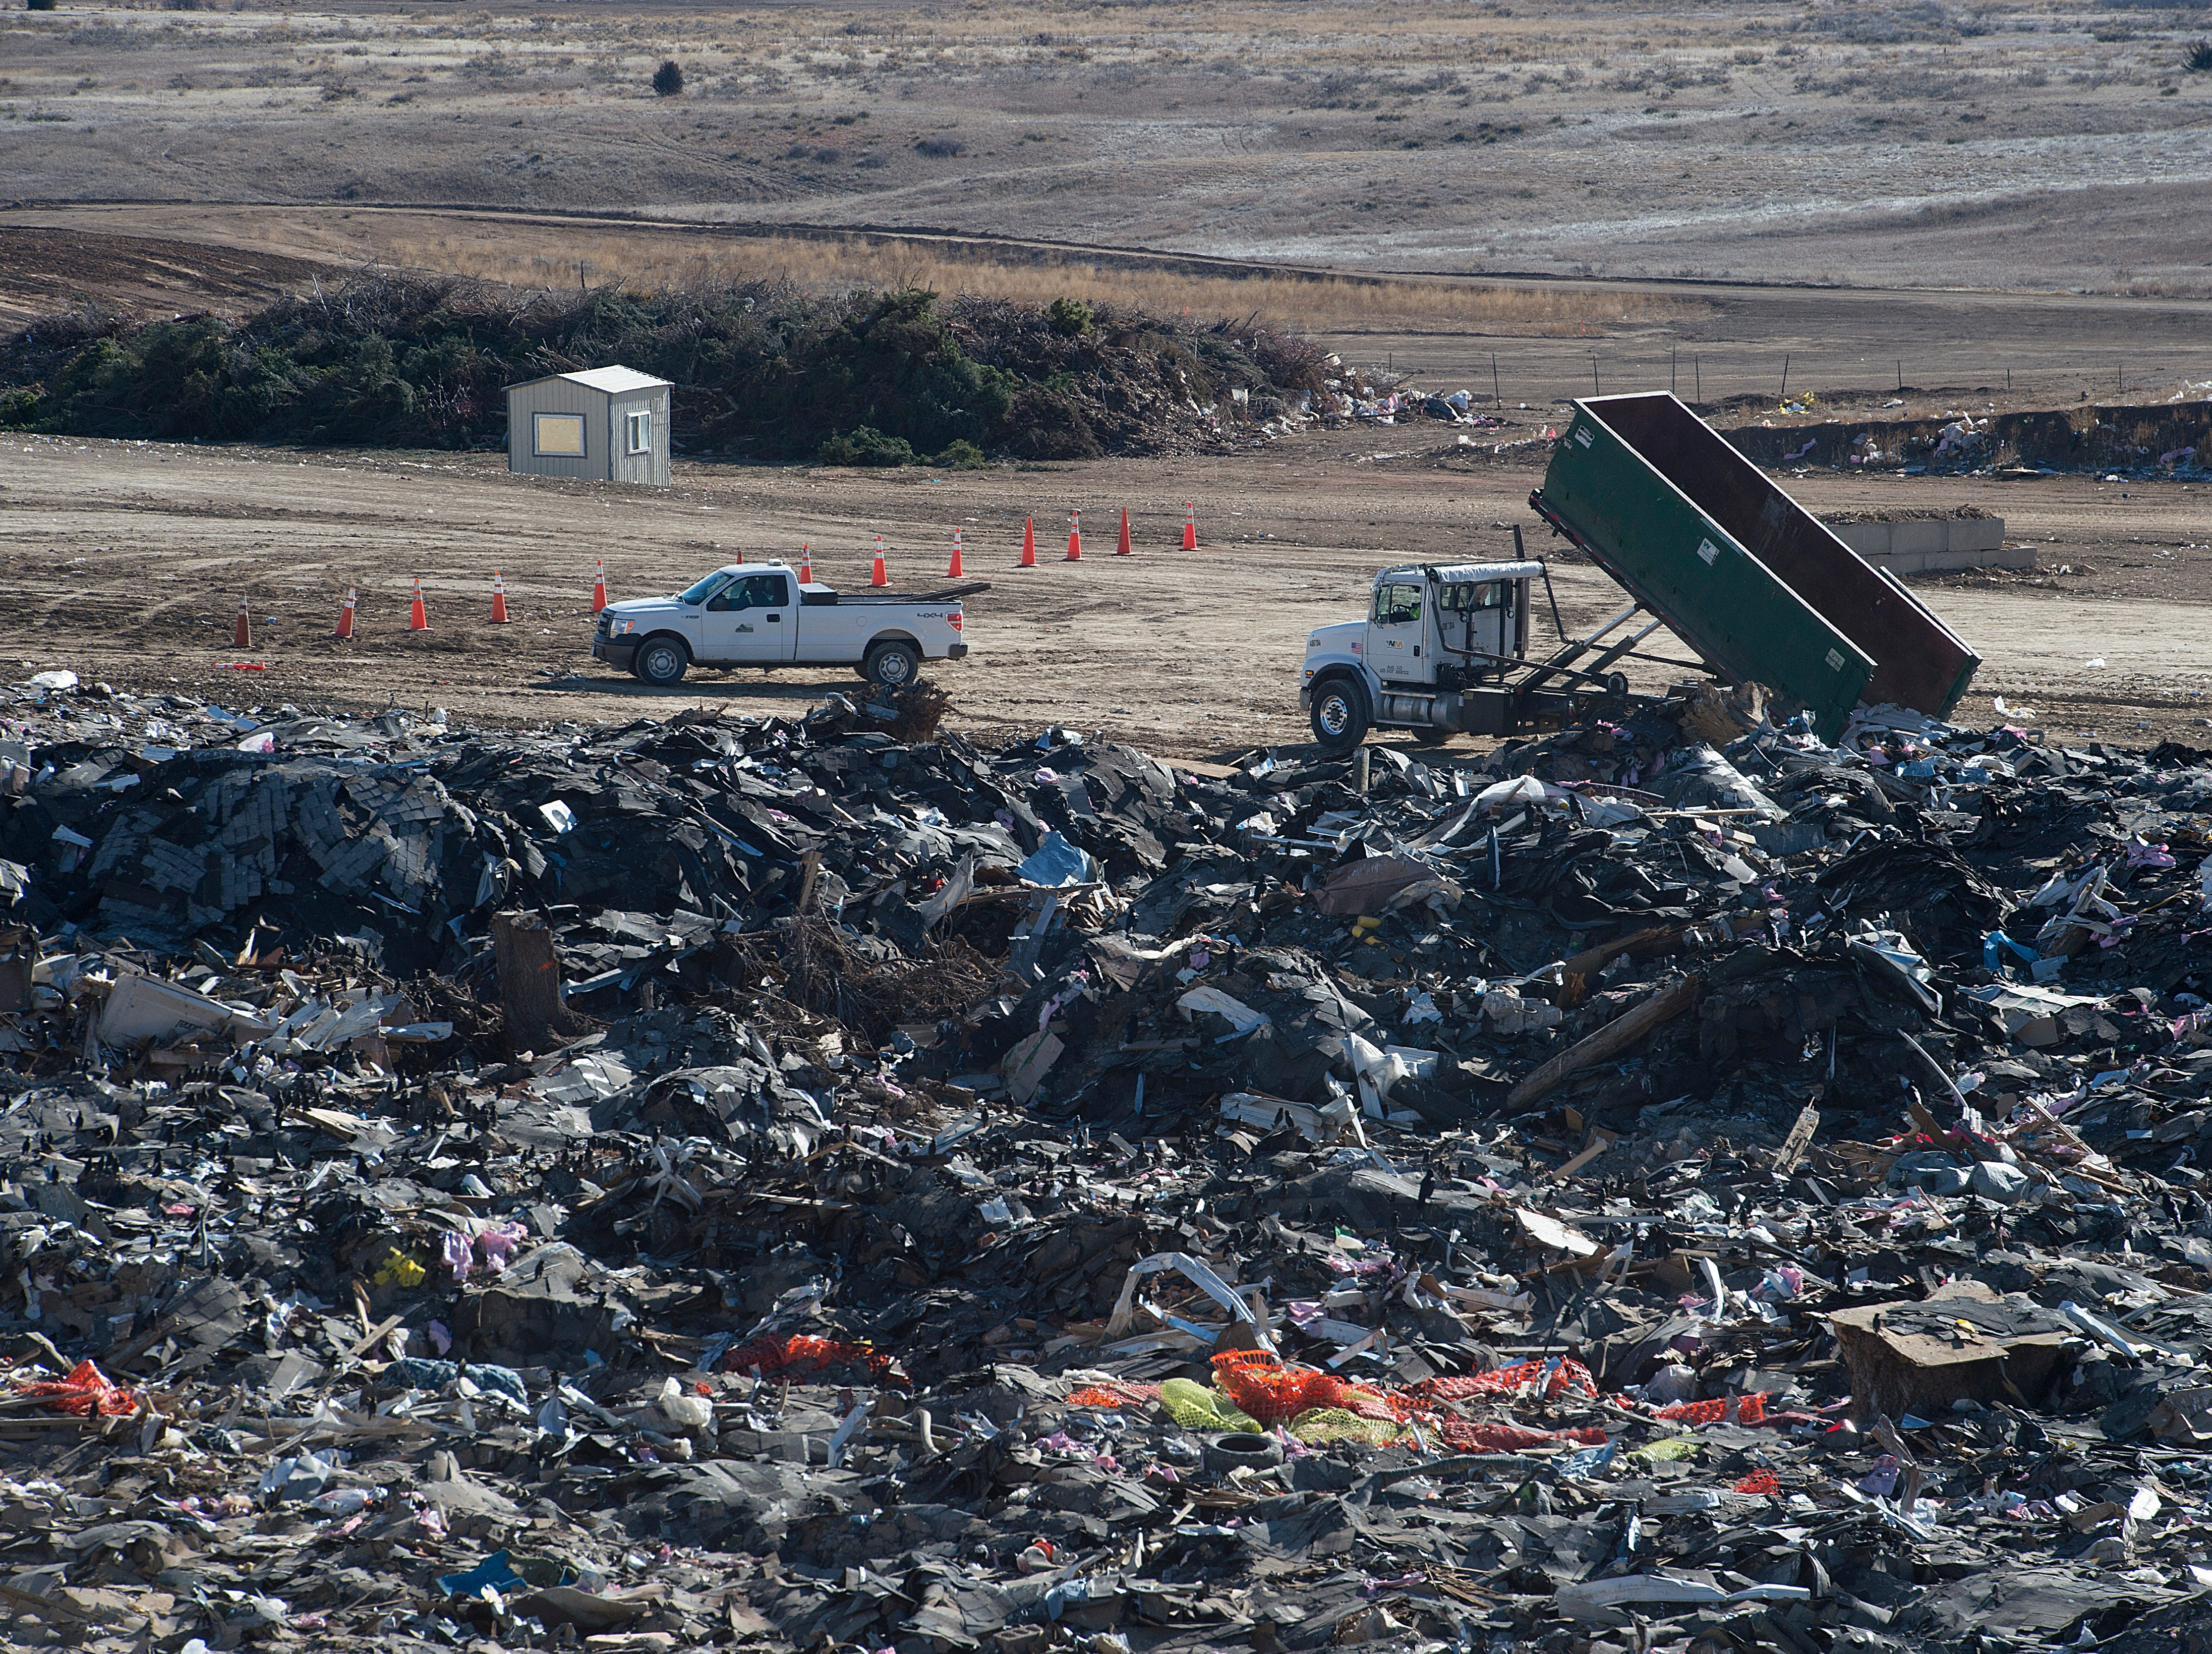 Trucks are dwarfed by piles of construction and demolition waste at the Larimer County Landfill on Tuesday, January 15, 2019.